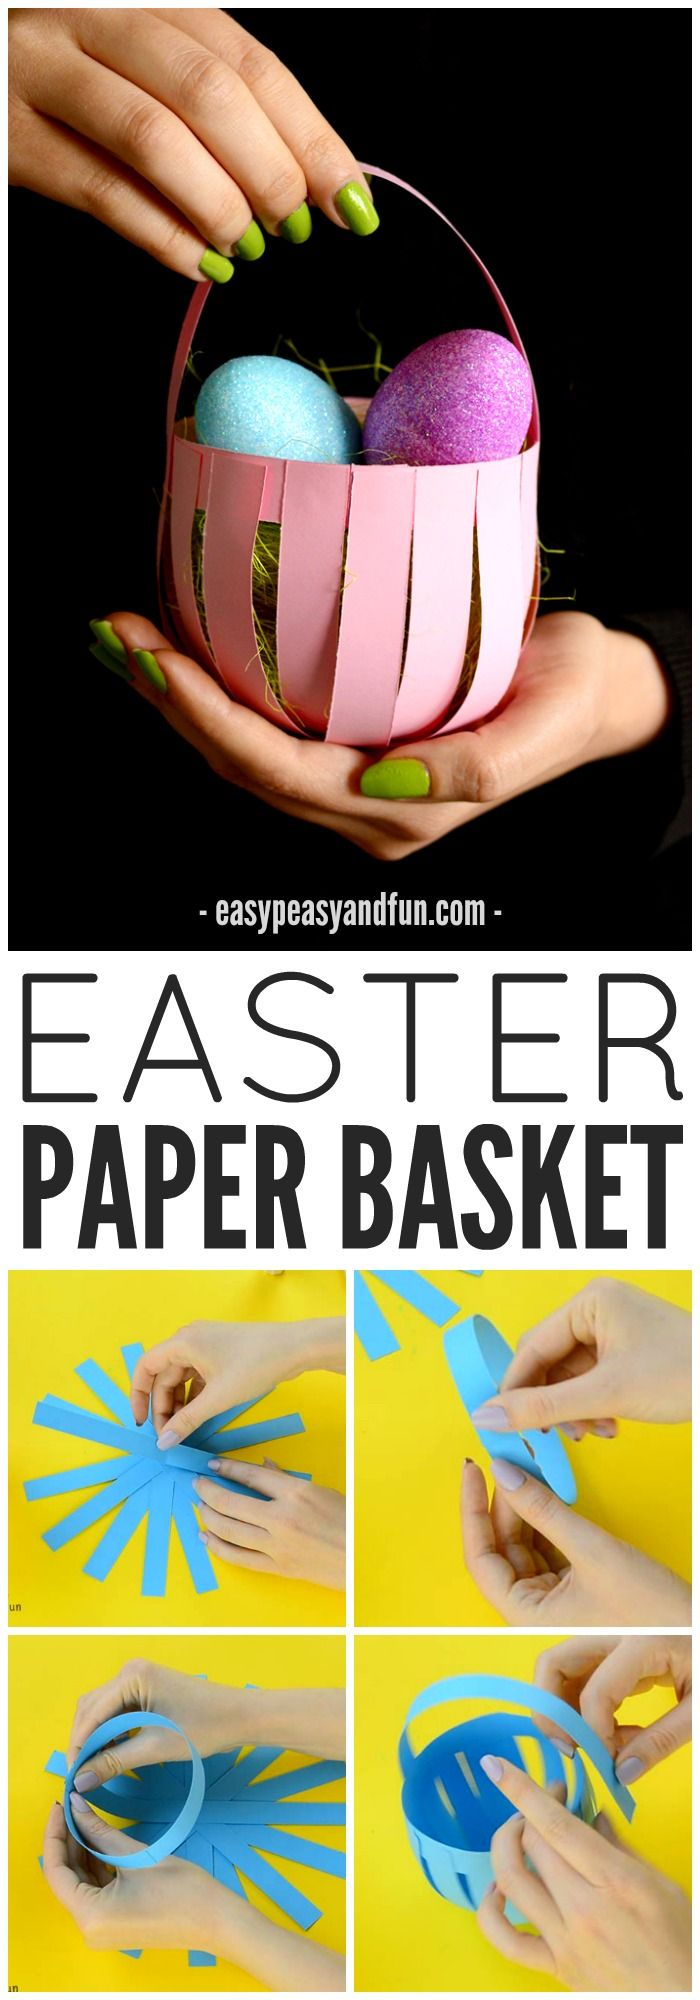 DIY Easter Paper Basket Craft